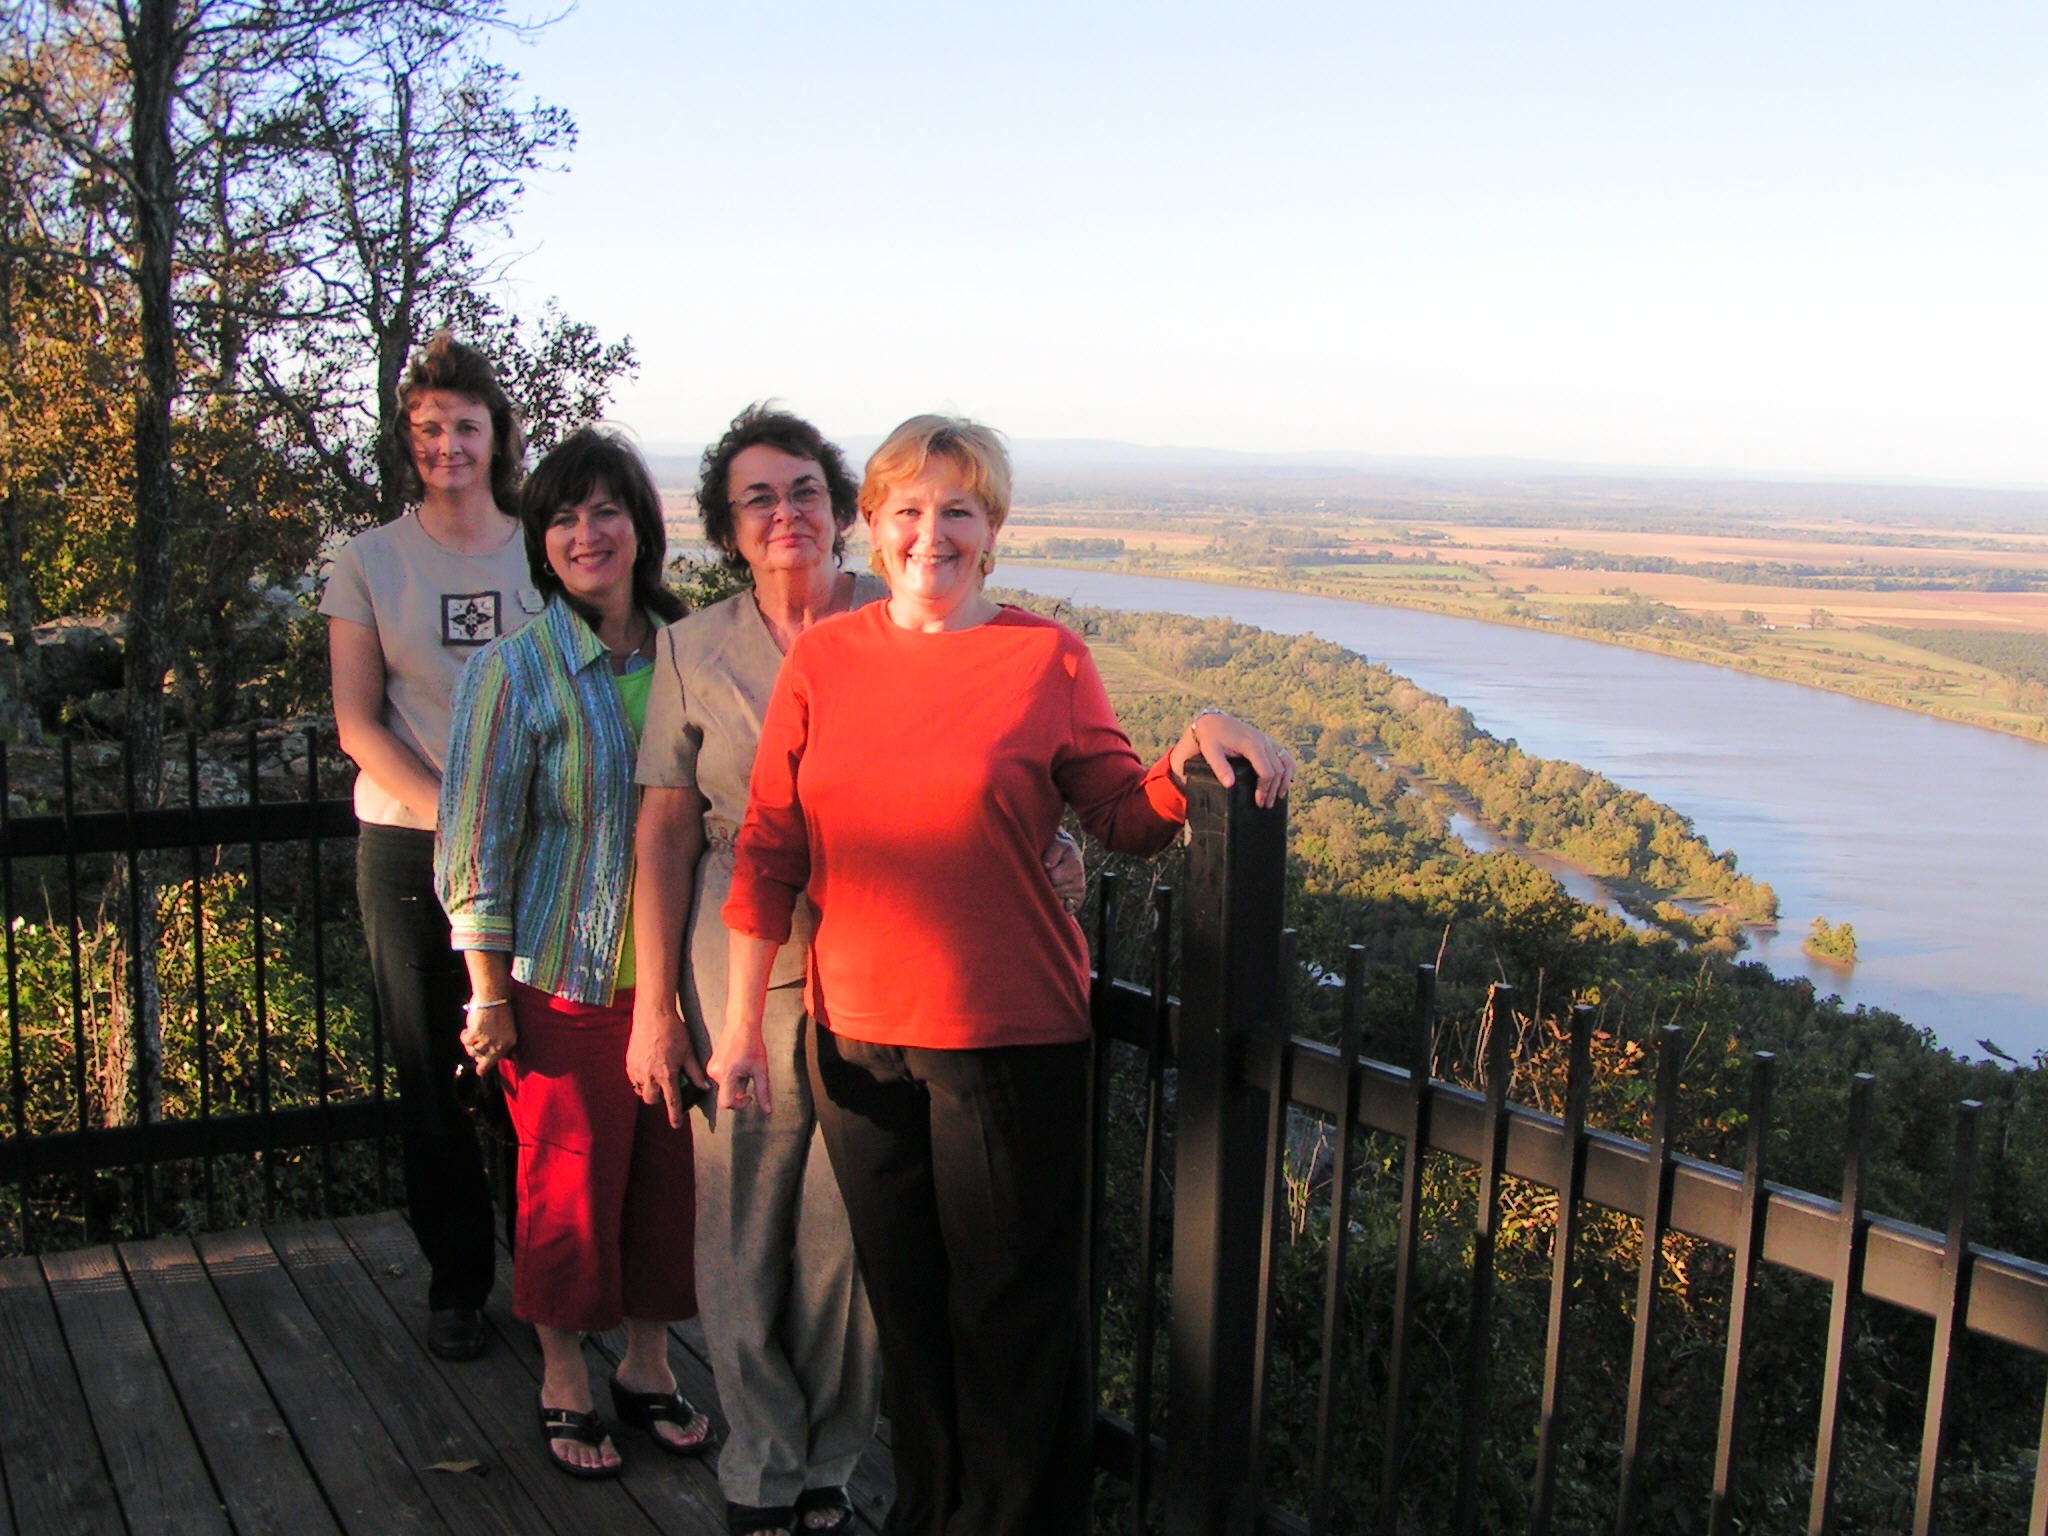 (L-R) Pam Gray, Deanna Ratcliffe, Linda Foreman, & Dee Ann Gutekunst enjoying one of the many scenic vistas atop Petit Jean Mountain.